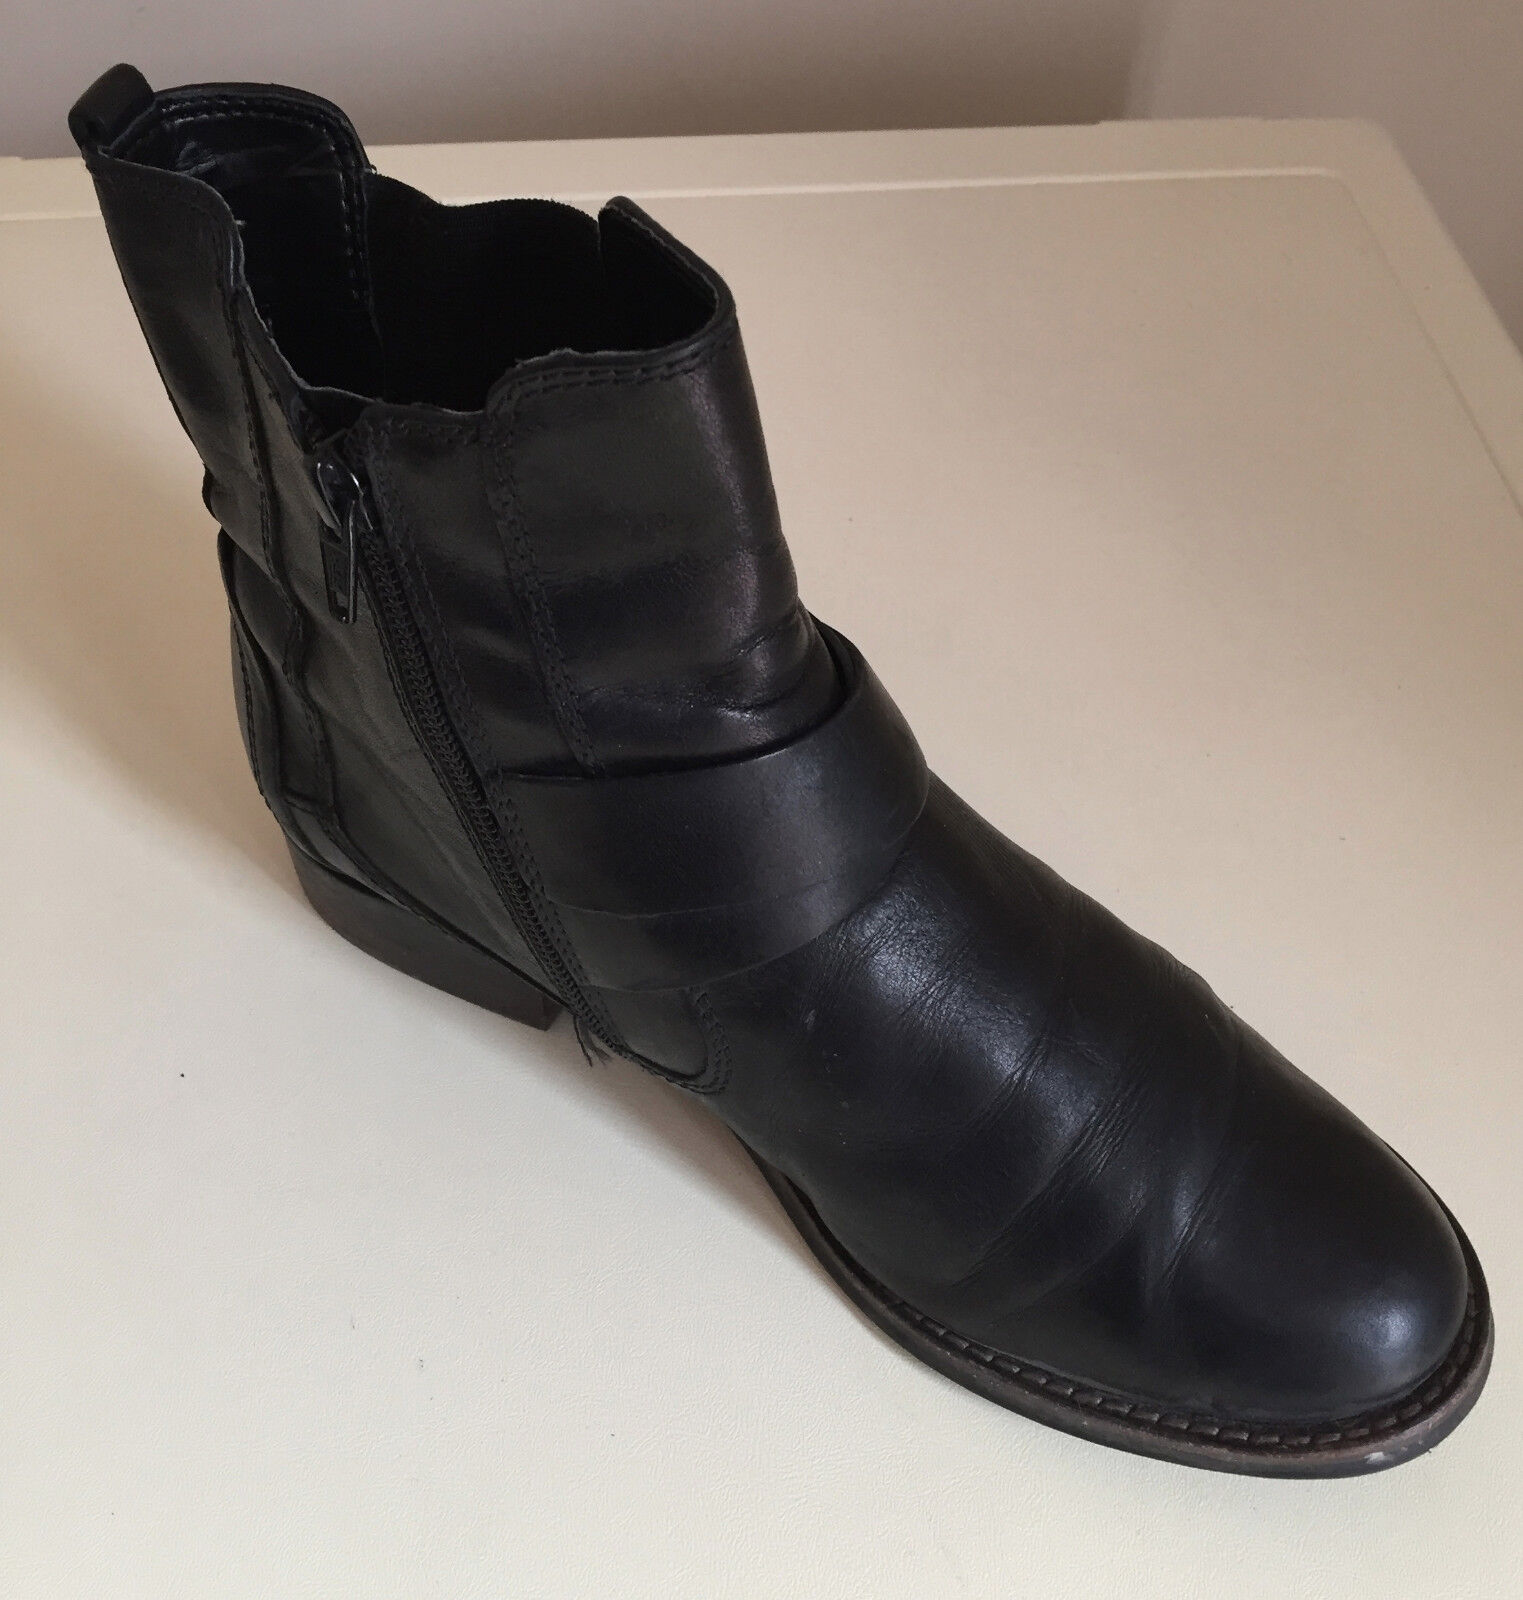 CLARKS Damenschuhe ANKLE LEATHER BOOTS   SIZE 6